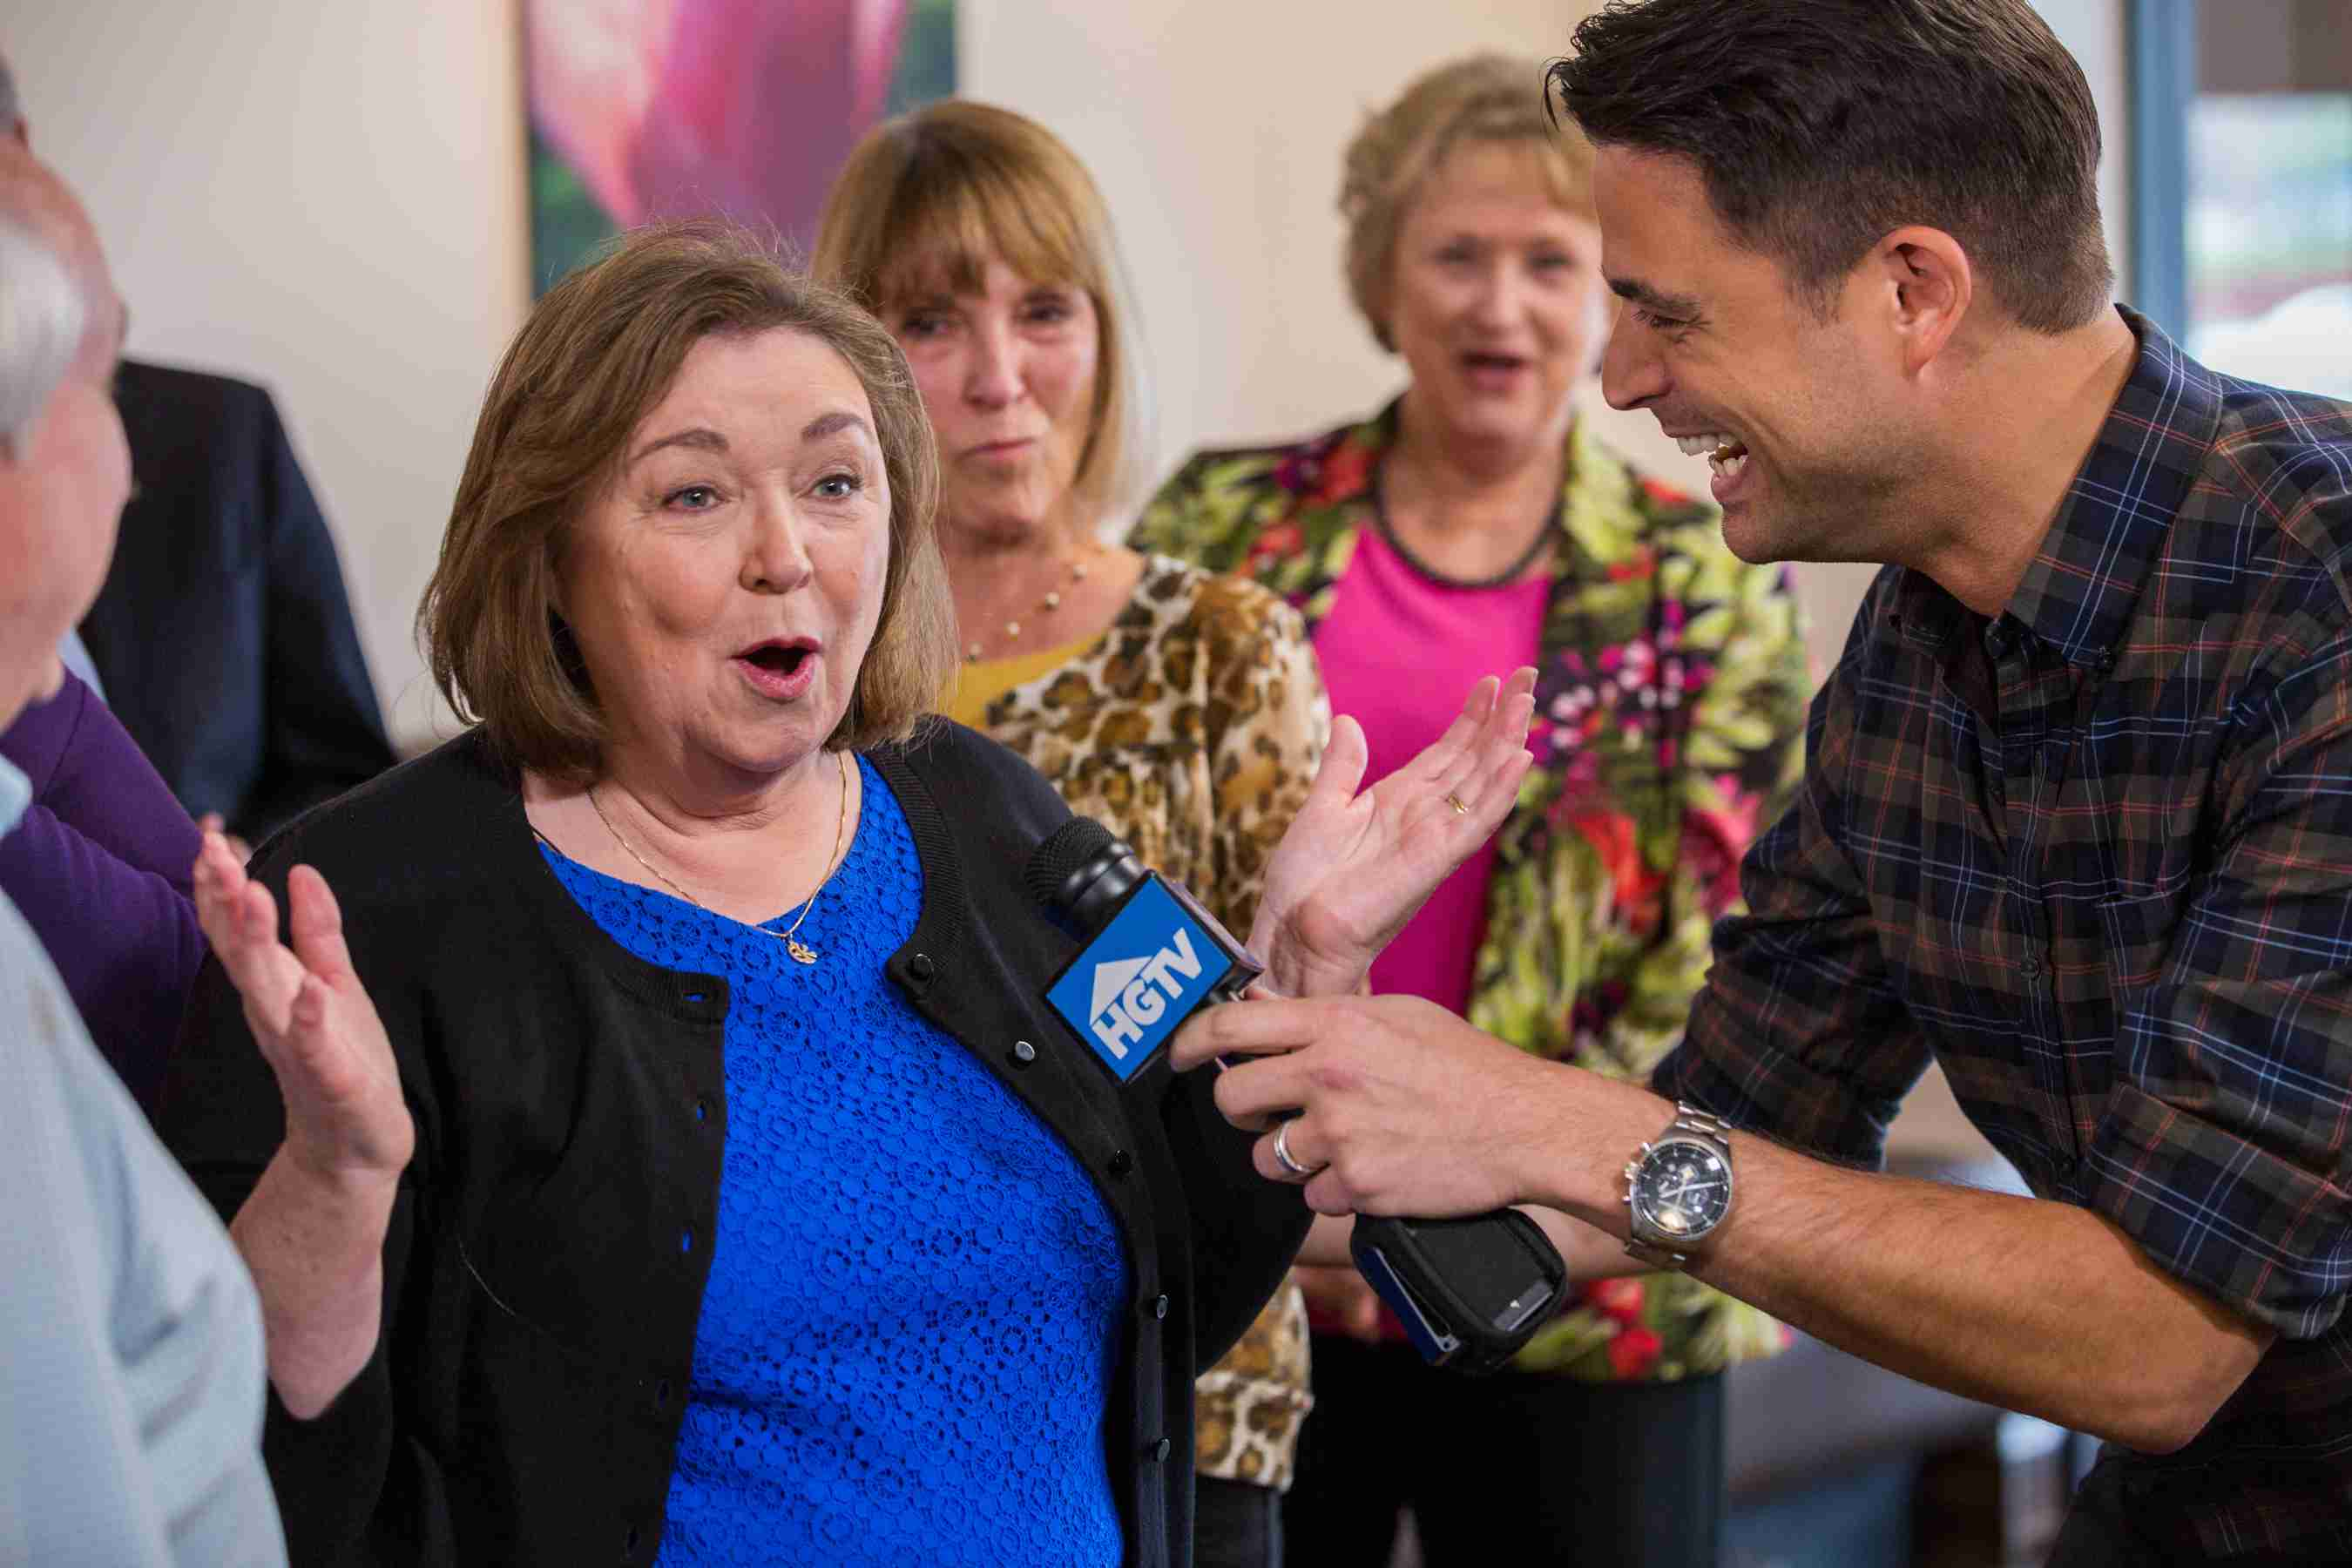 Katherine O'Dell from Alabama Wins the 2015 HGTV Dream Home